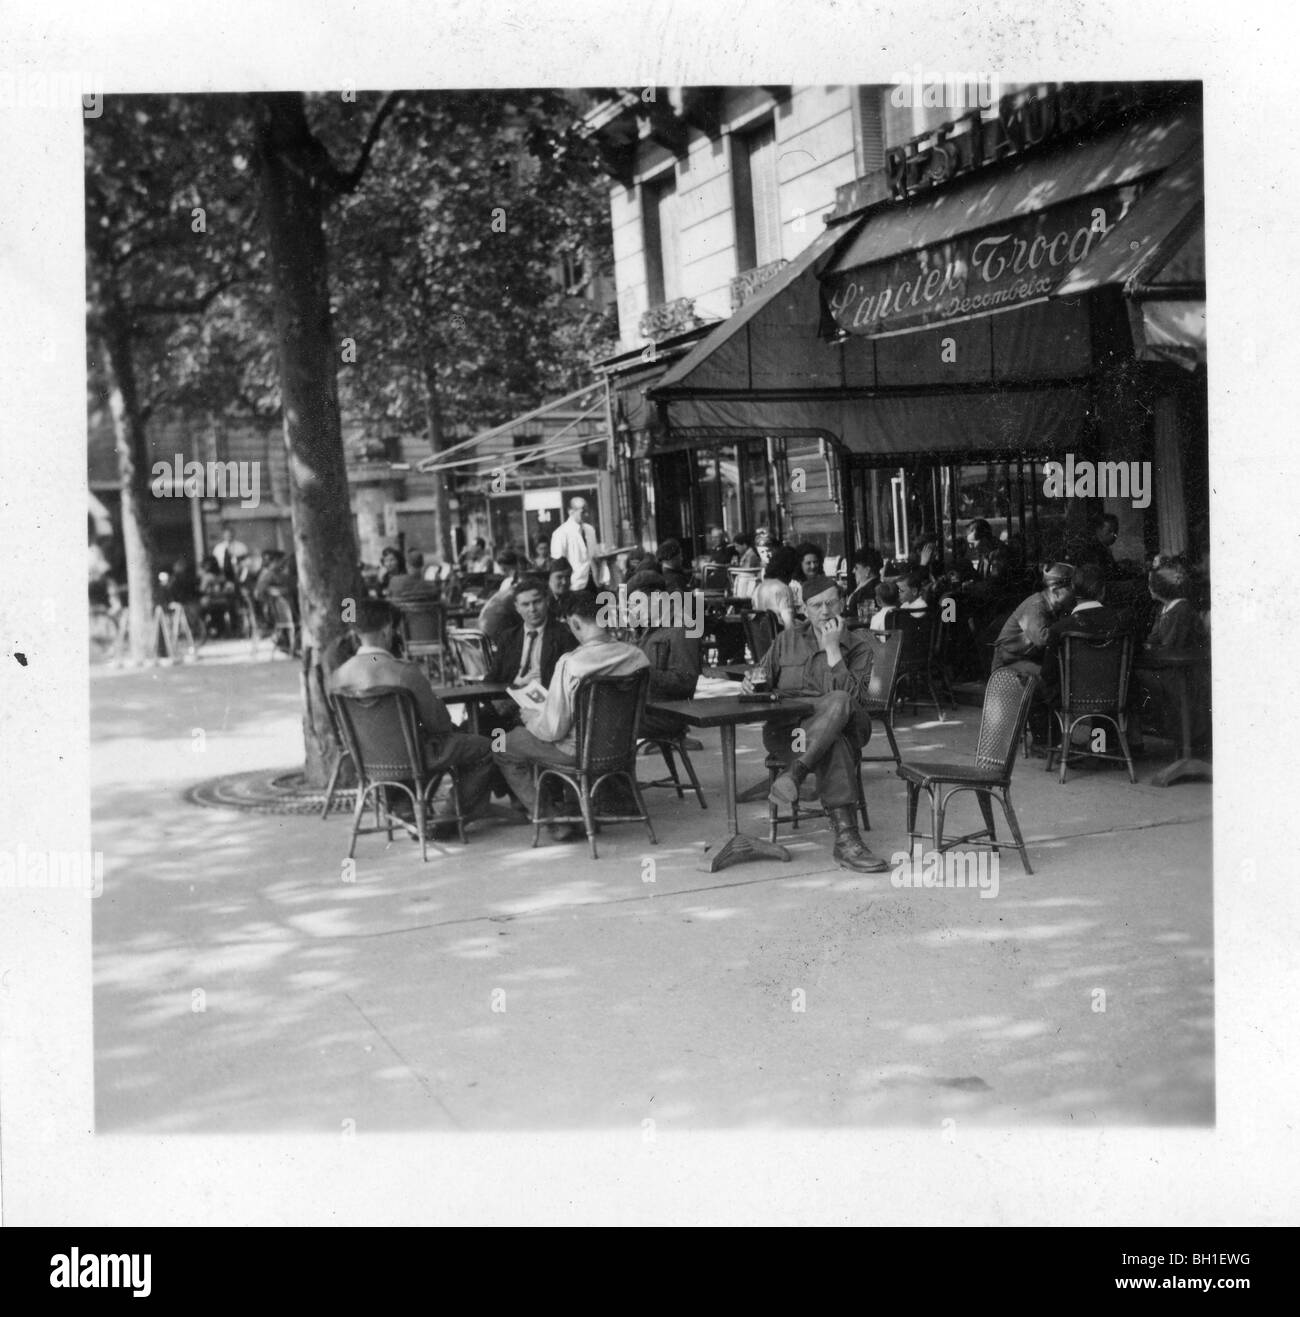 Parisians and GIs seated at sidewalk cafe in liberated Paris, France at the conclusion of WWII. - Stock Image